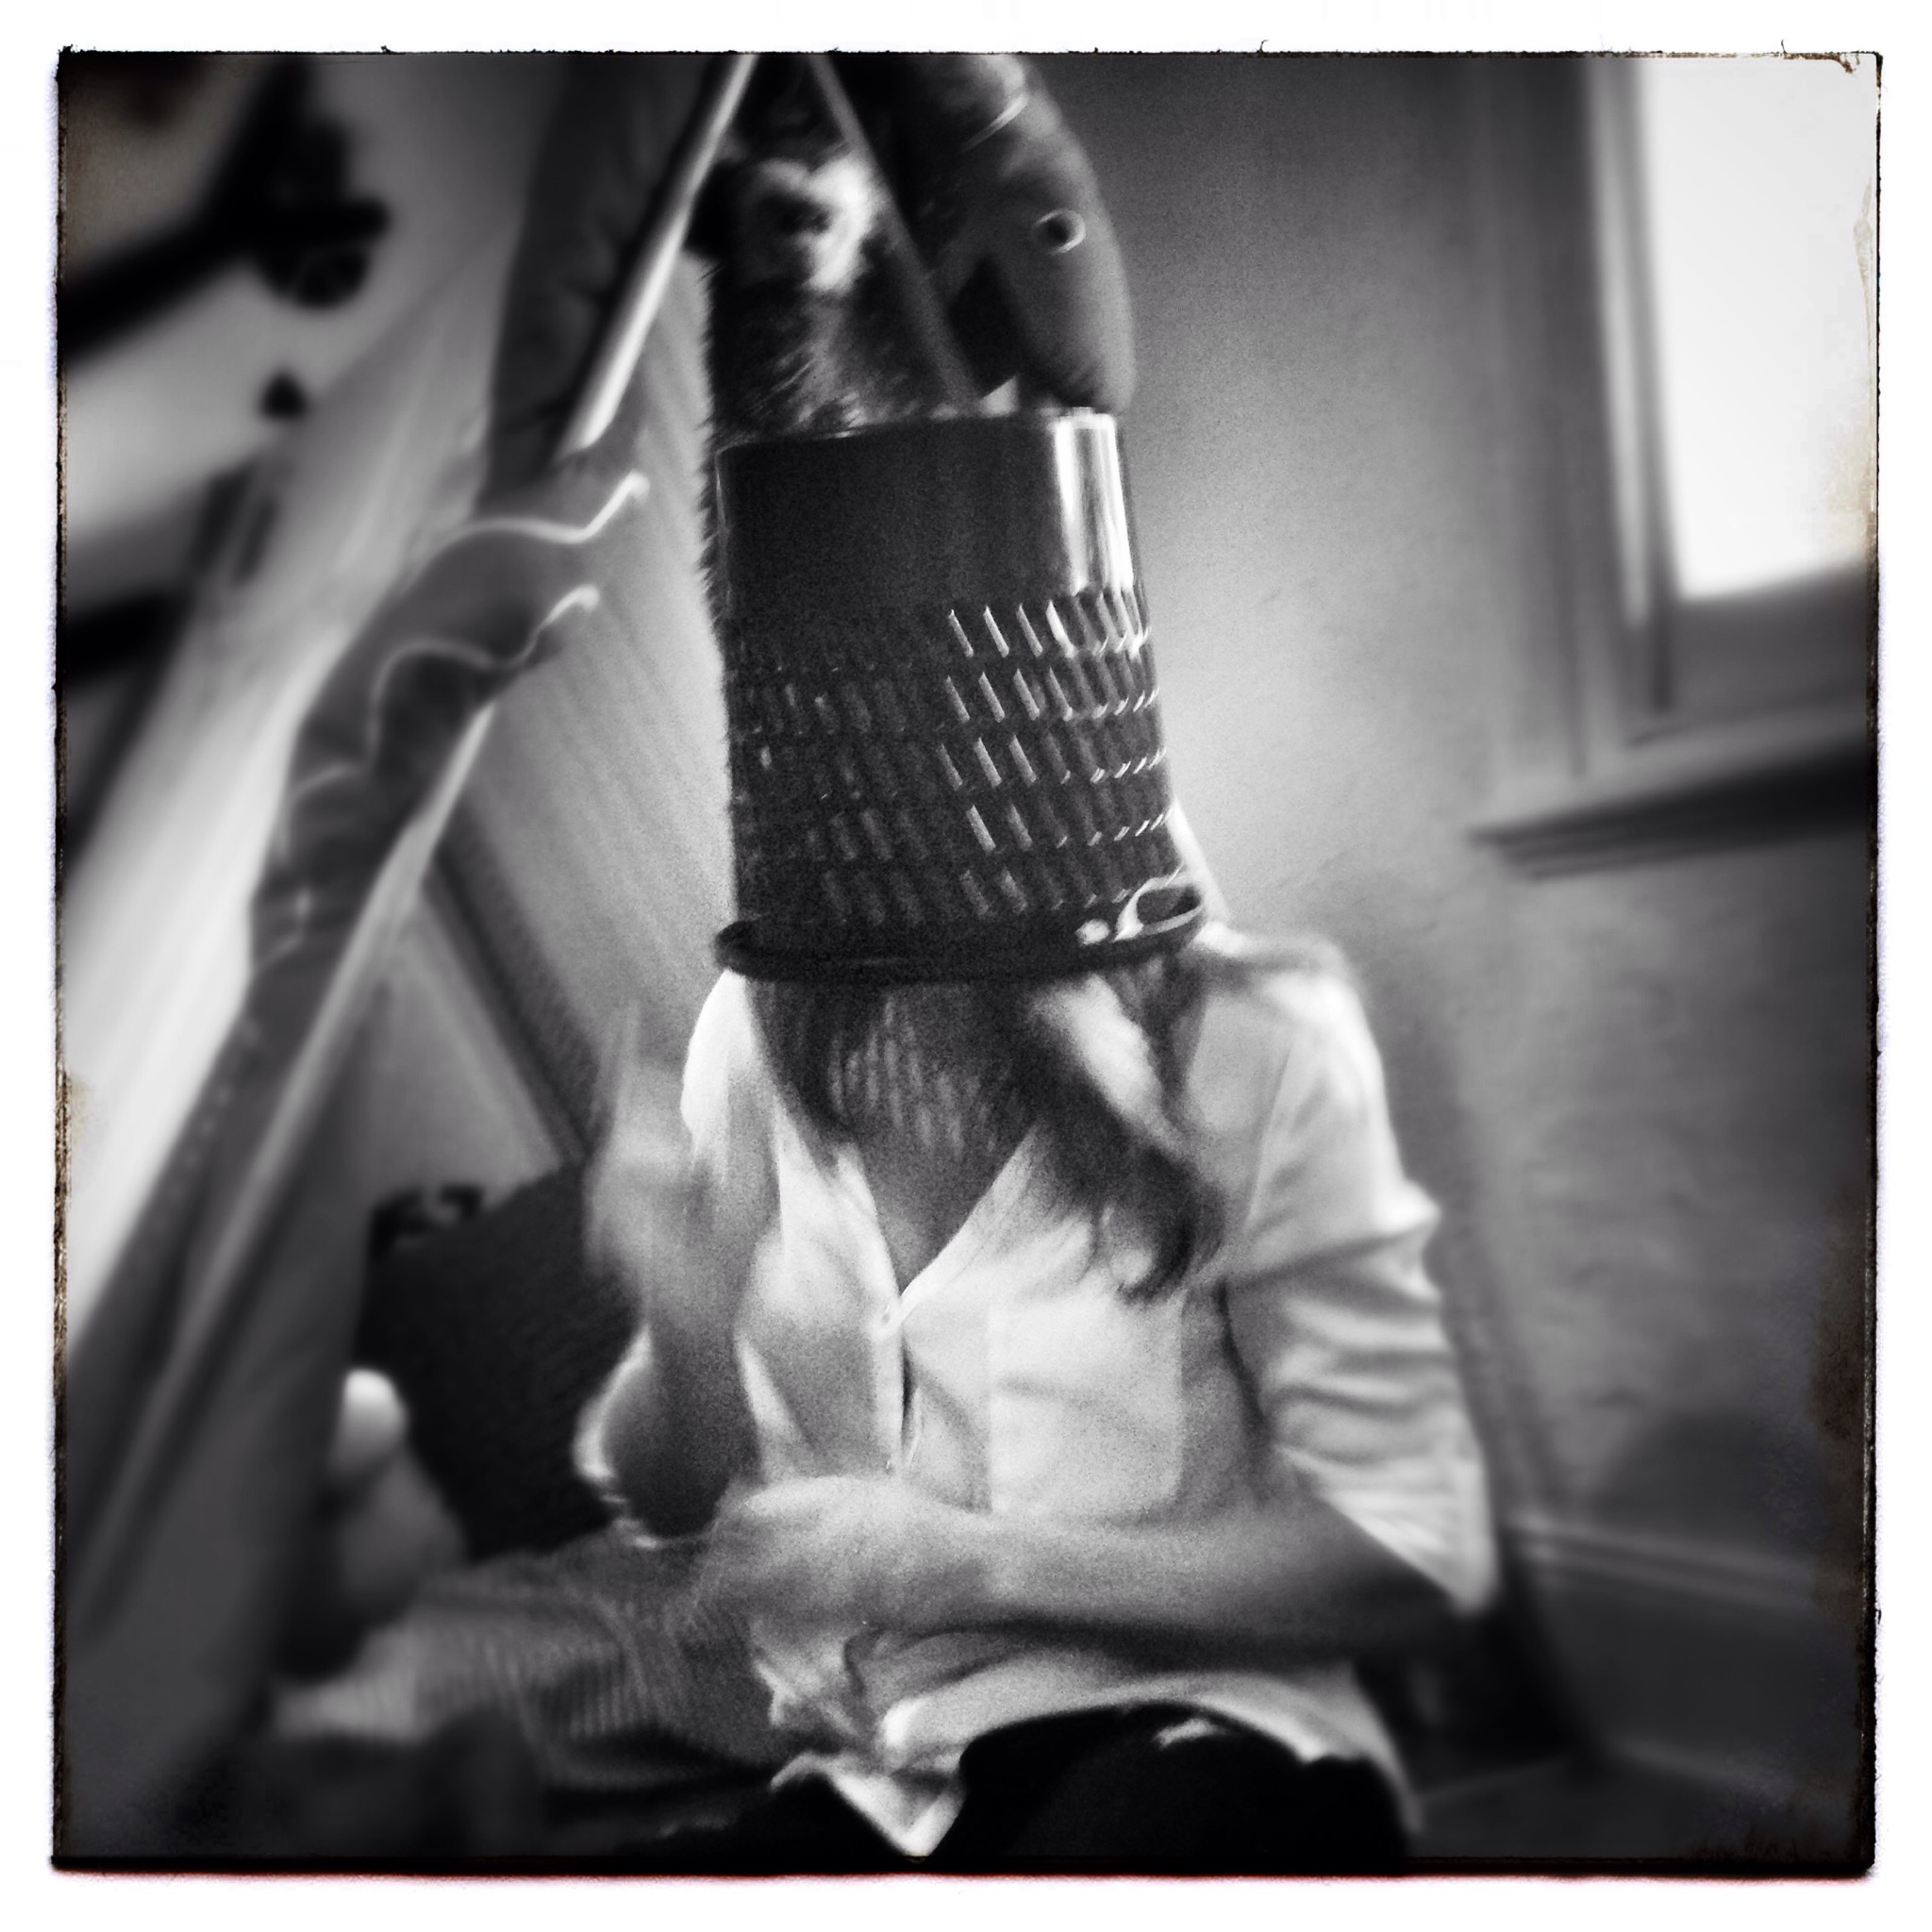 Day 1279. Mrs BucketHead